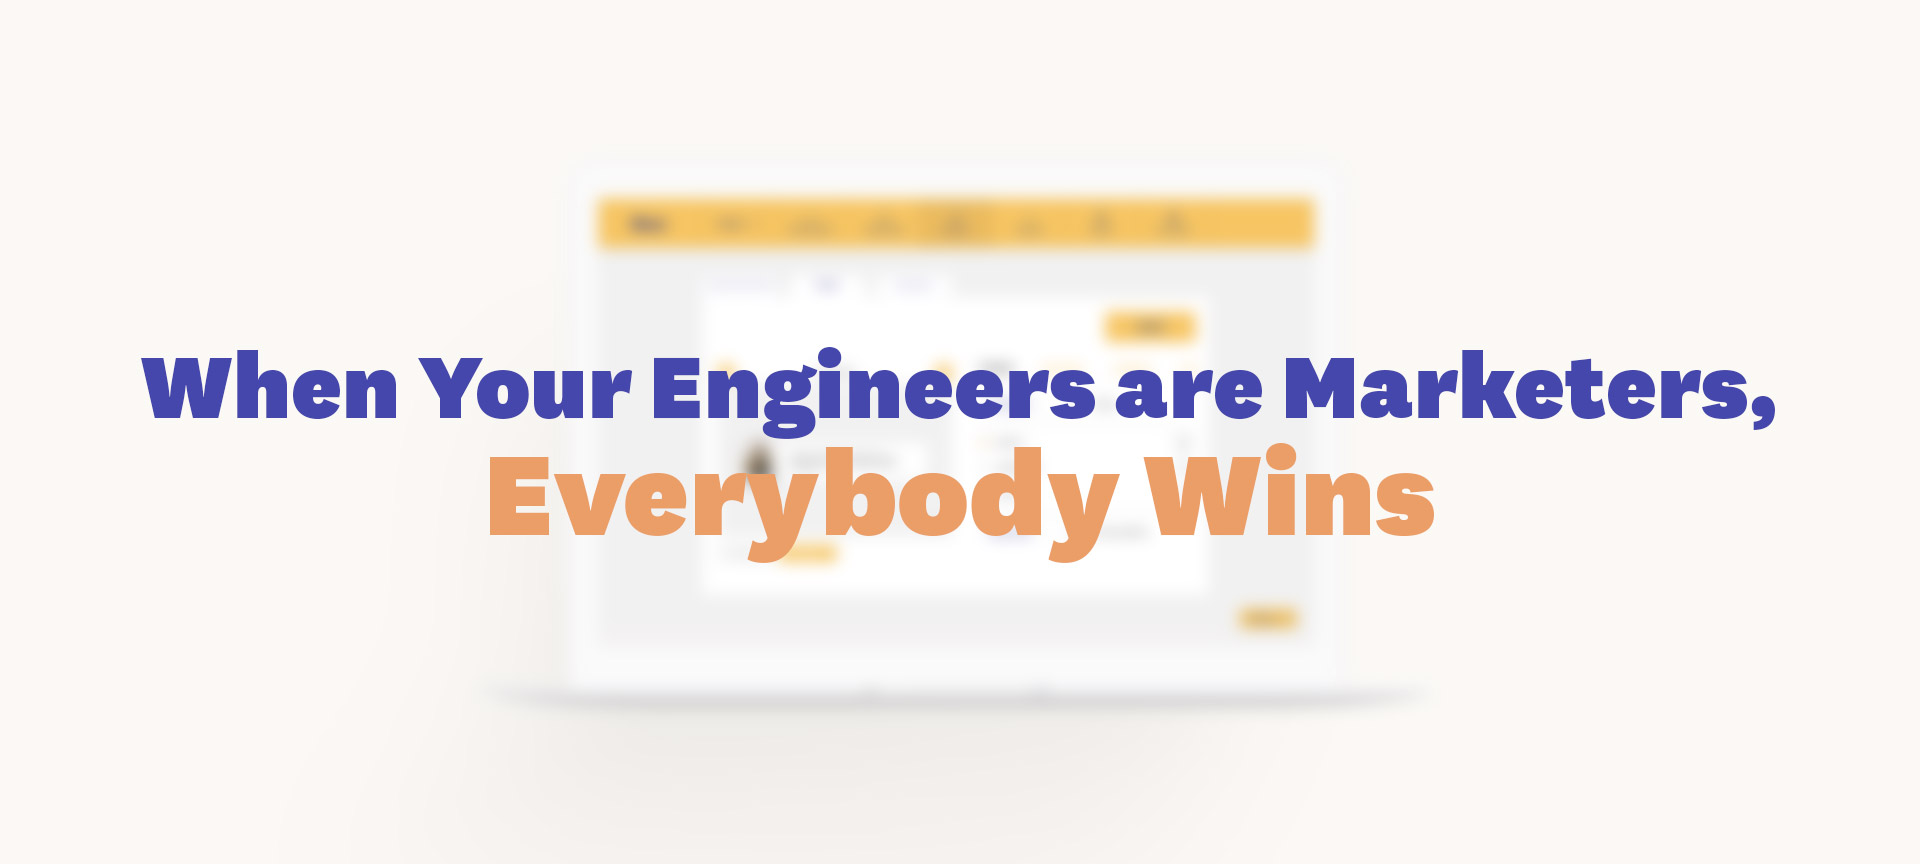 When Engineers are Marketers, Everybody Wins